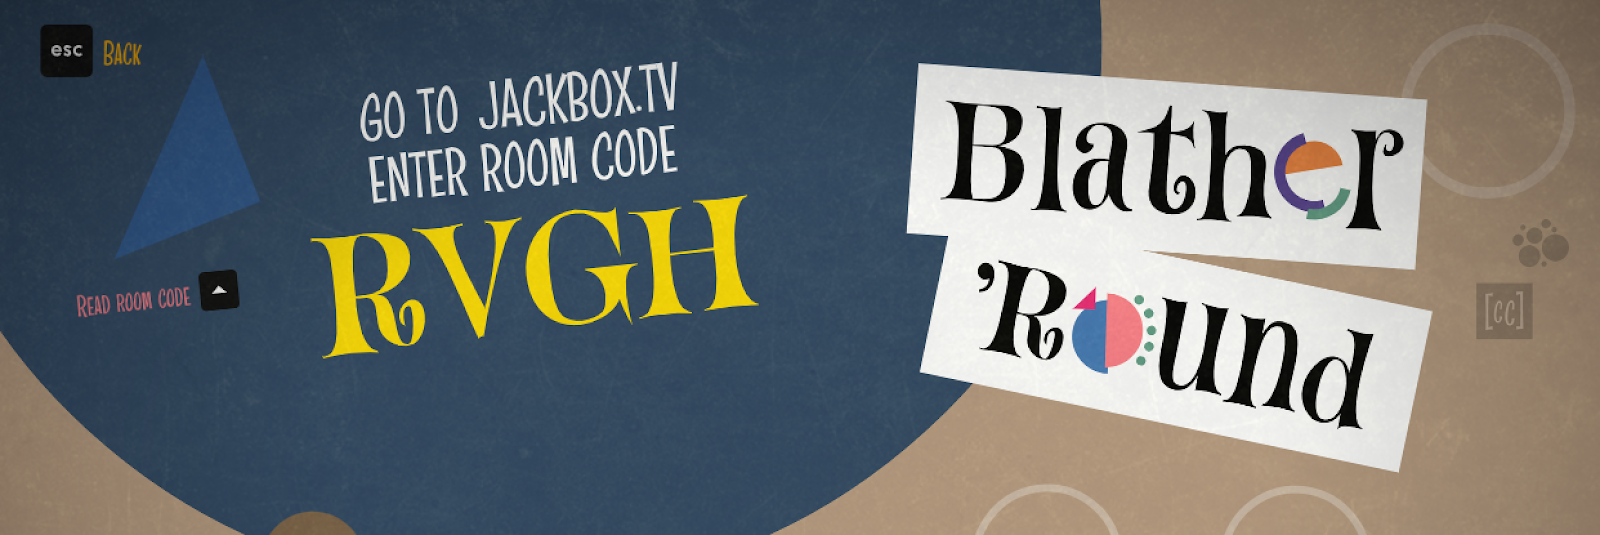 """Screencap of Blather Round, cropped to show the room code. Image reads """"go to Jackbox.tv, enter room code RVGH"""" with the code itself in large yellow letters."""